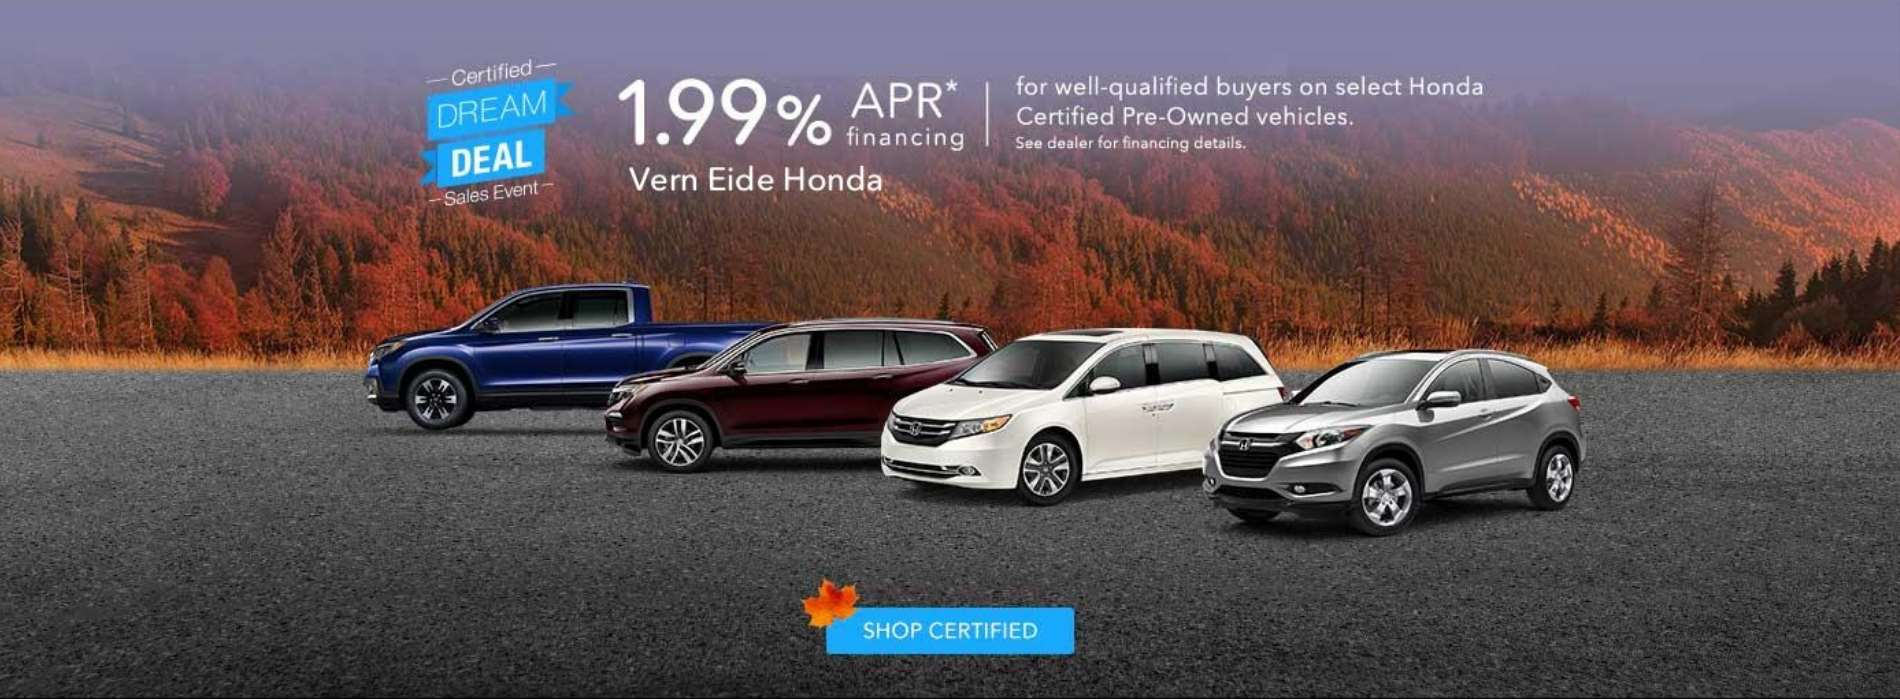 1.99 APR Certified Pre-Owned - October 2018